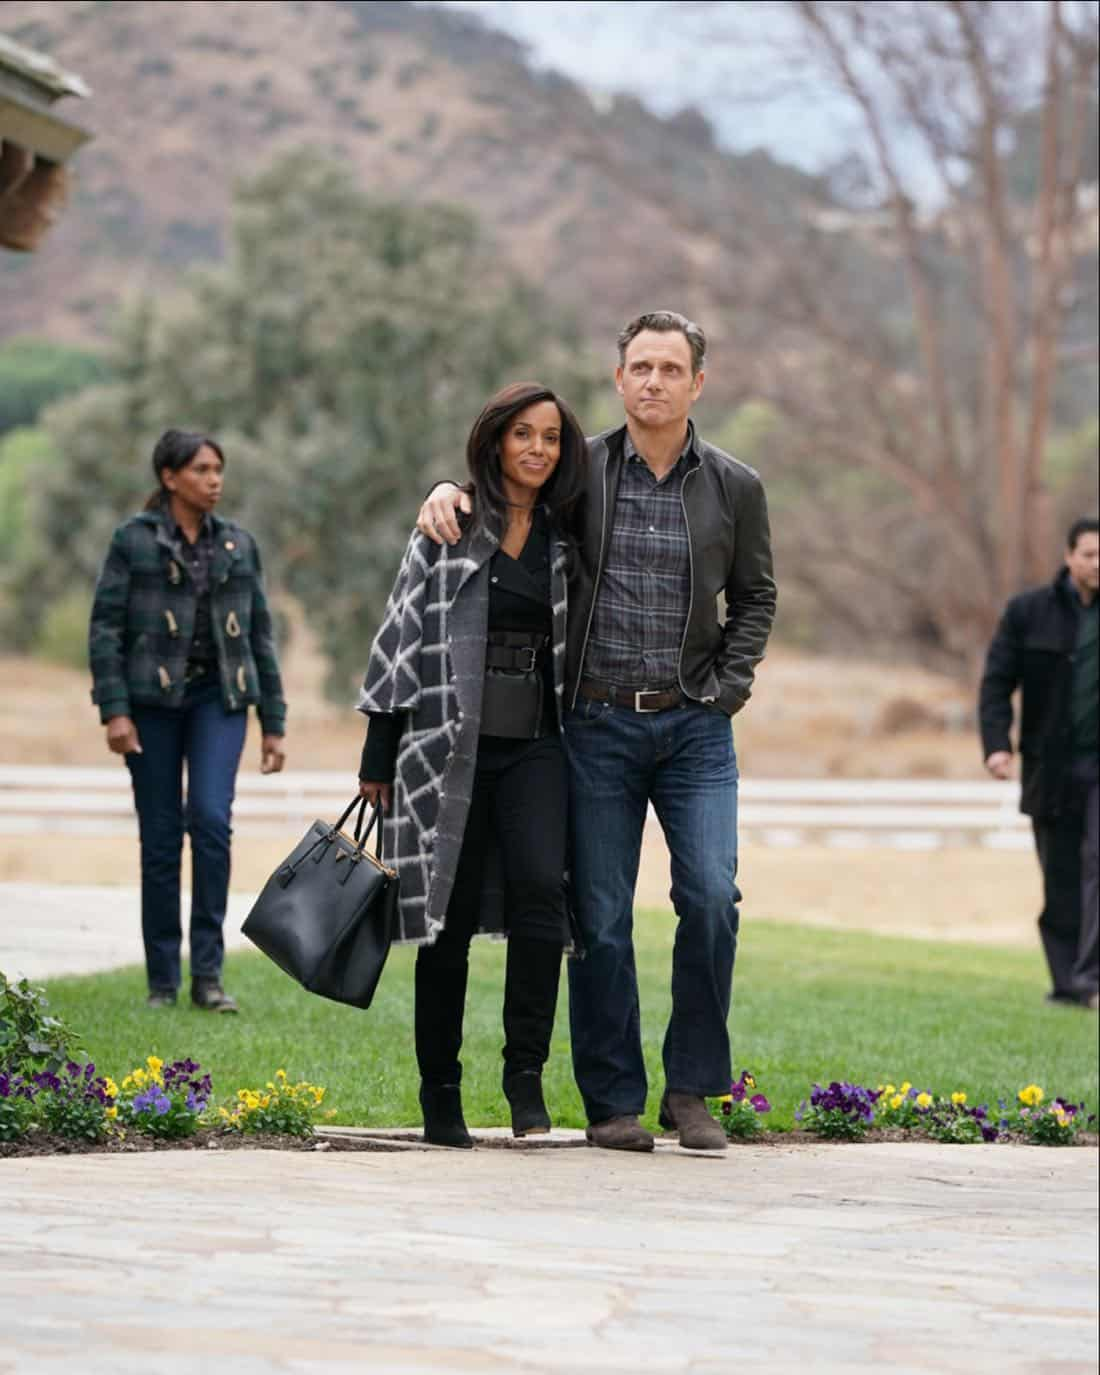 """SCANDAL - """"The People v. Olivia Pope"""" - When Olivia agrees to join Fitz in Vermont for what she thinks will be a relaxing getaway, she is shocked to find that her closest friends have orchestrated a relentless intervention. Back in Washington, Cyrus finally reveals his suspicions to Mellie about Olivia and Jake's extracurricular activities, on """"Scandal,"""" airing THURSDAY, FEB. 1 (9:00-10:00 p.m. EST), on The ABC Television Network. (ABC/Mitch Haaseth)"""